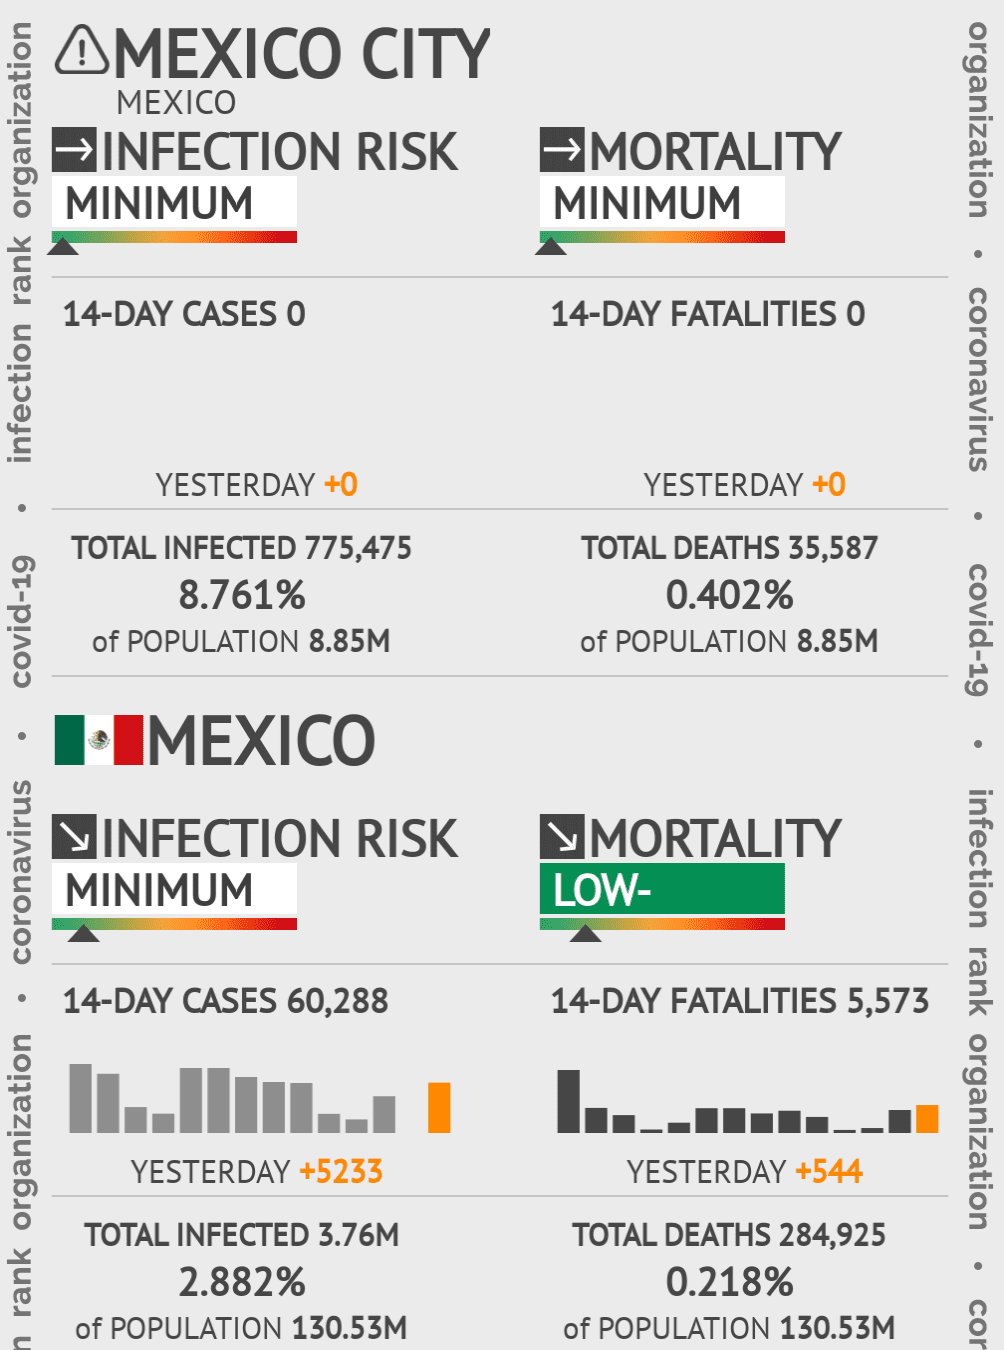 Mexico City Coronavirus Covid-19 Risk of Infection on March 03, 2021